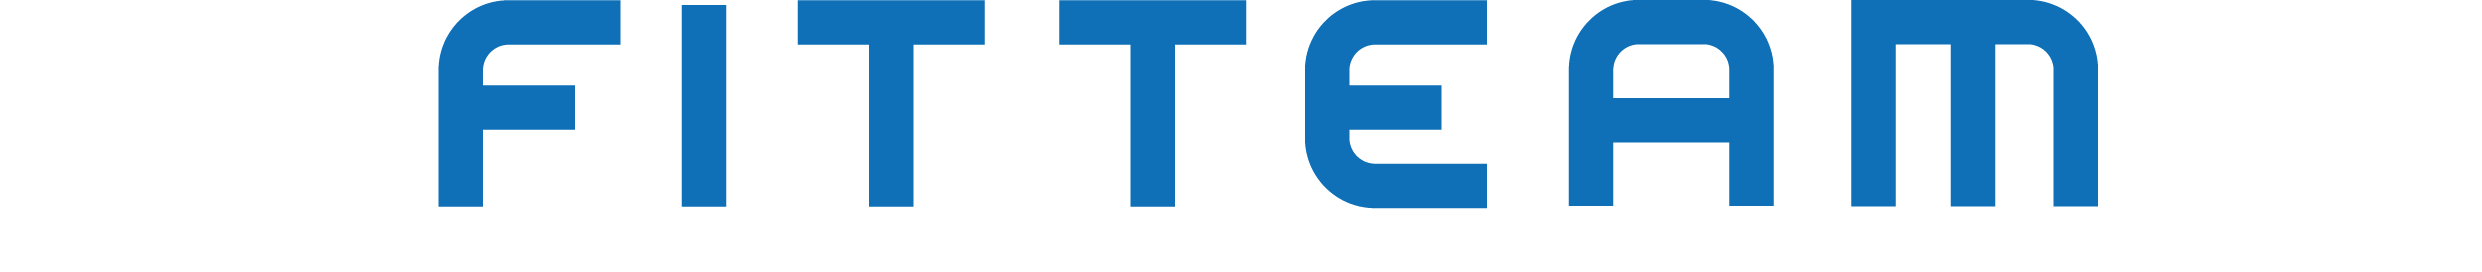 FITTEAM-LOGO-1.png